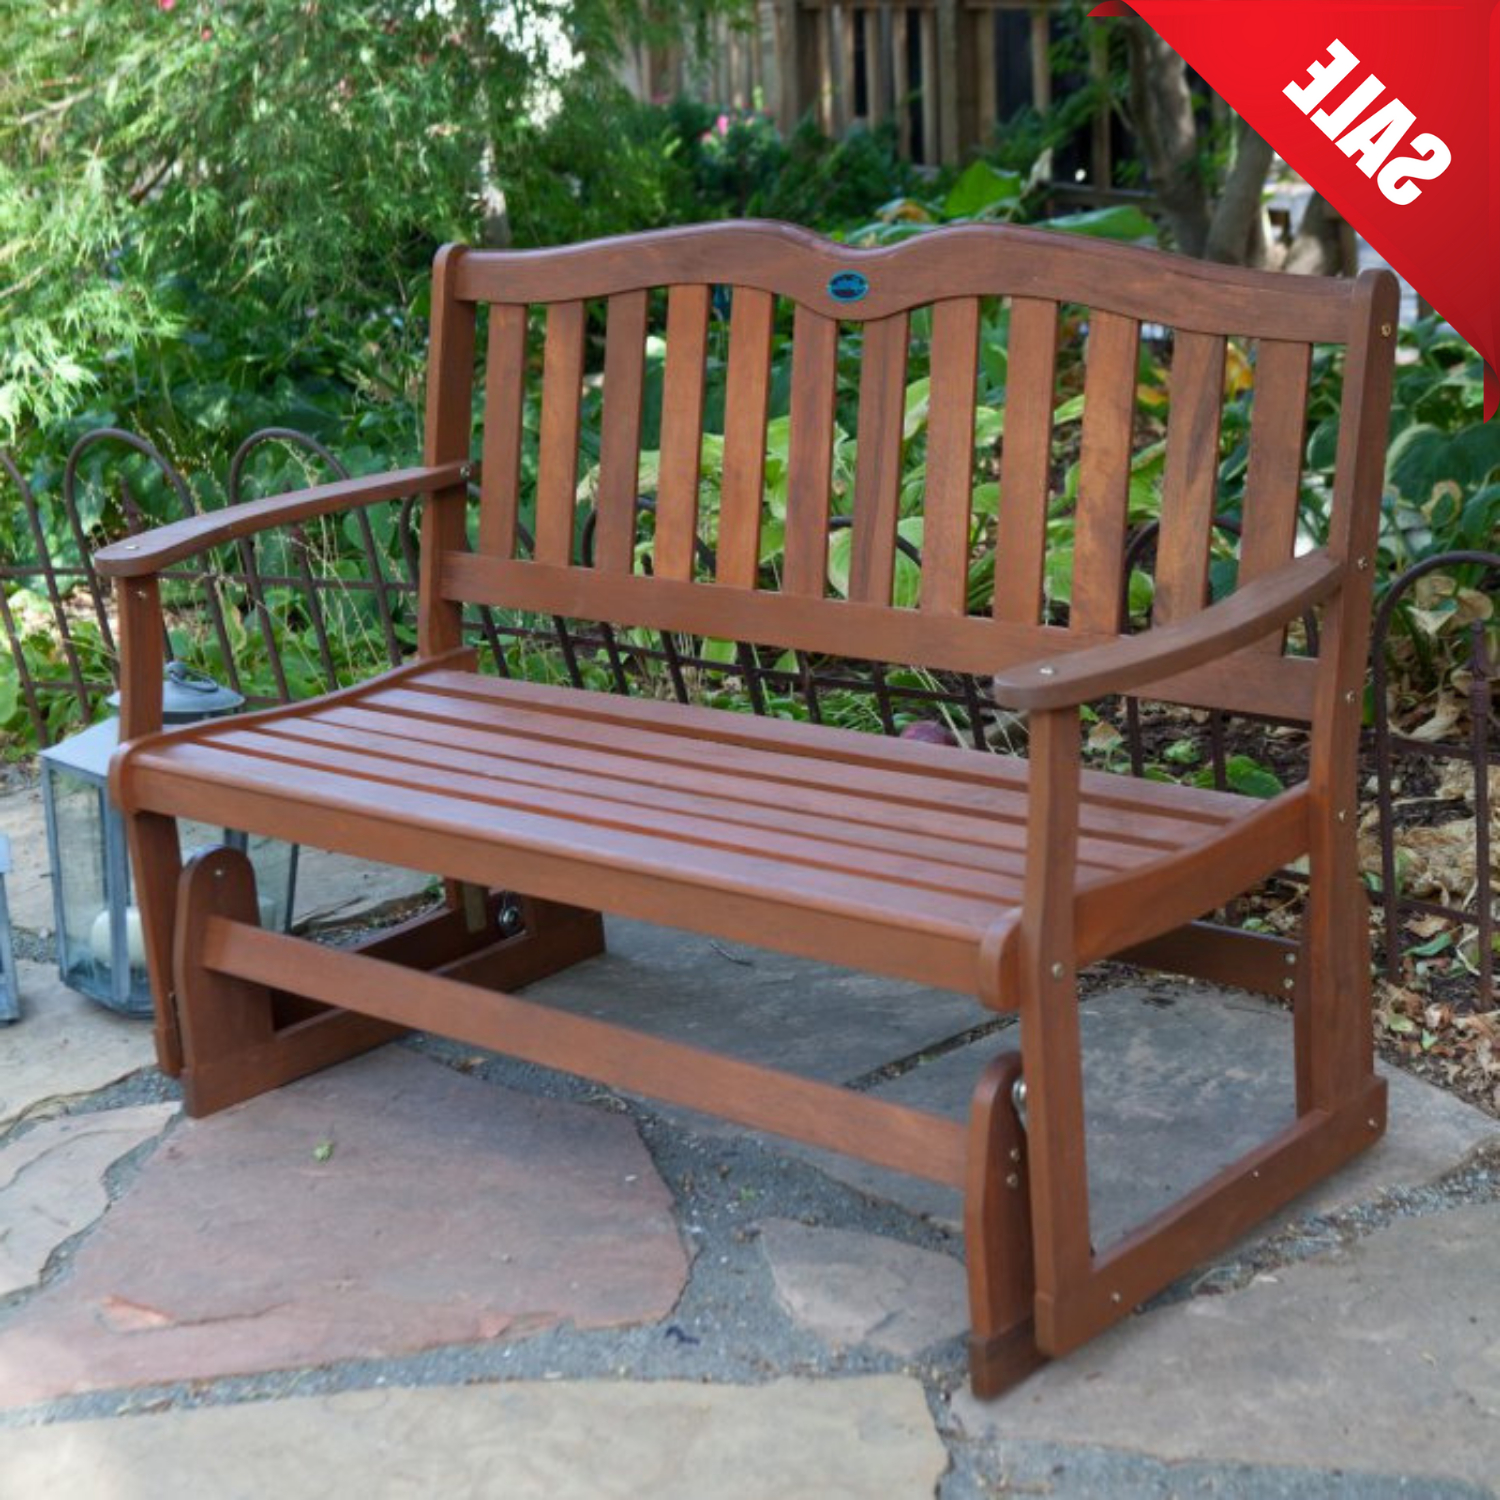 Glider Bench Wooden Porch Seat Outdoor Loveseat Patio Garden Furniture Rocking Regarding Fashionable Teak Outdoor Glider Benches (View 6 of 25)